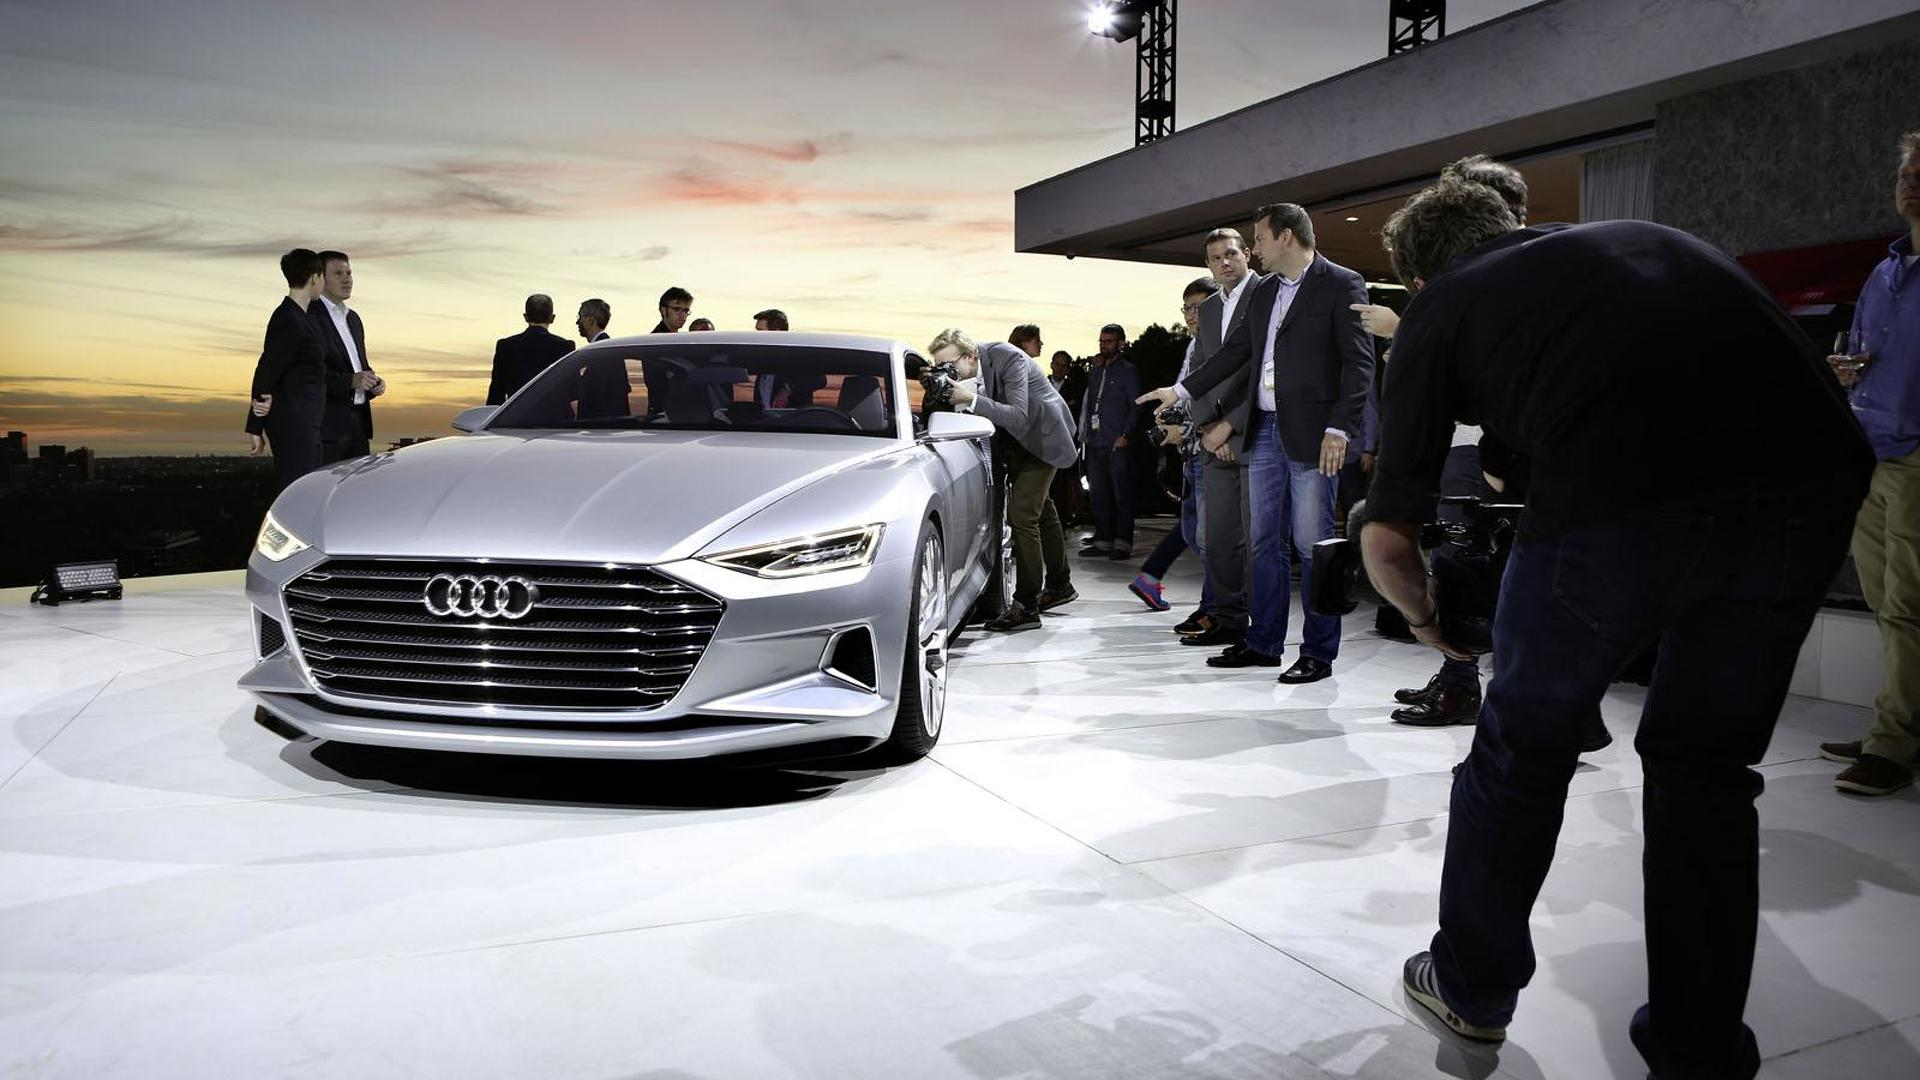 Audi unveils their stylish Prologue concept